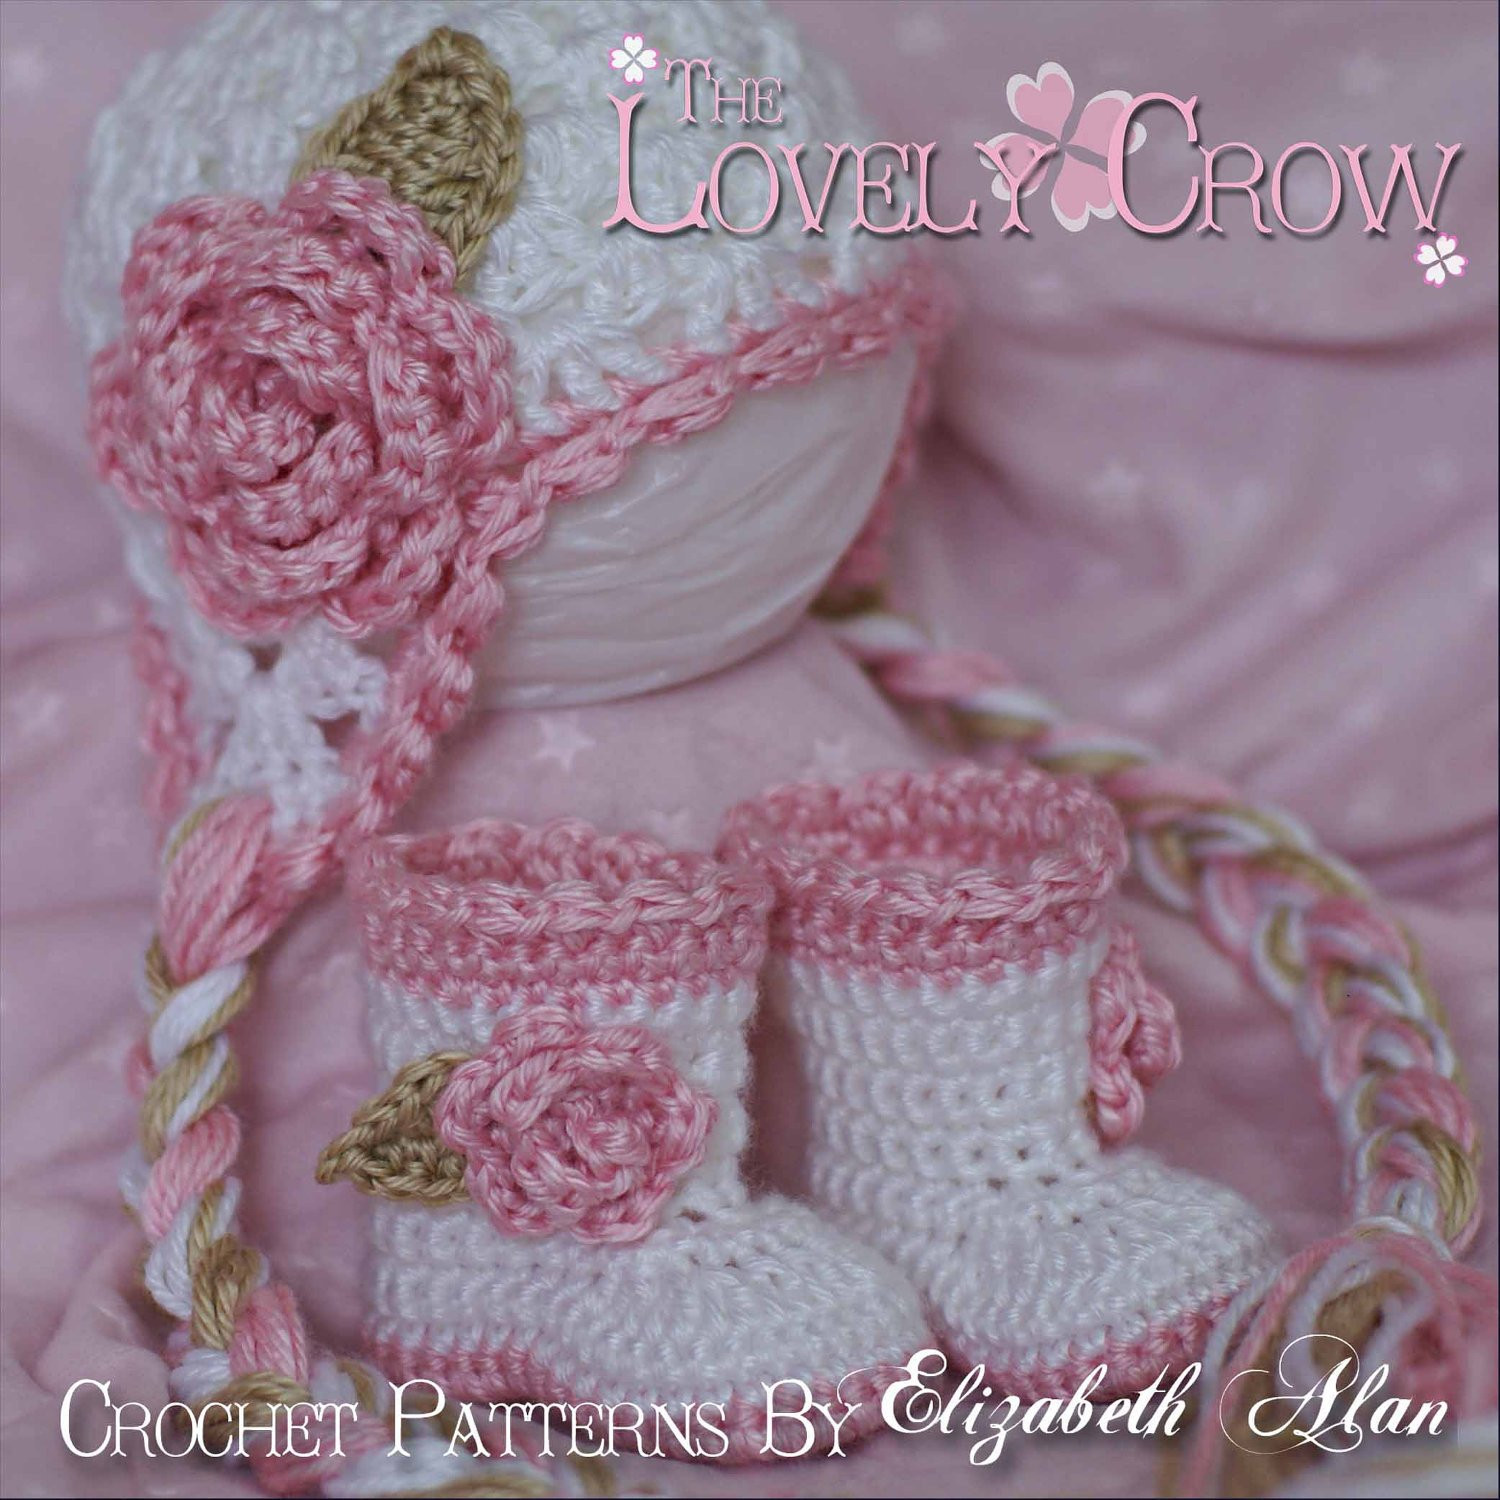 Baby Girl Crochet Patterns Best Of Layette Crochet Patterns Sugar and Spice Set Includes Of Perfect 45 Models Baby Girl Crochet Patterns